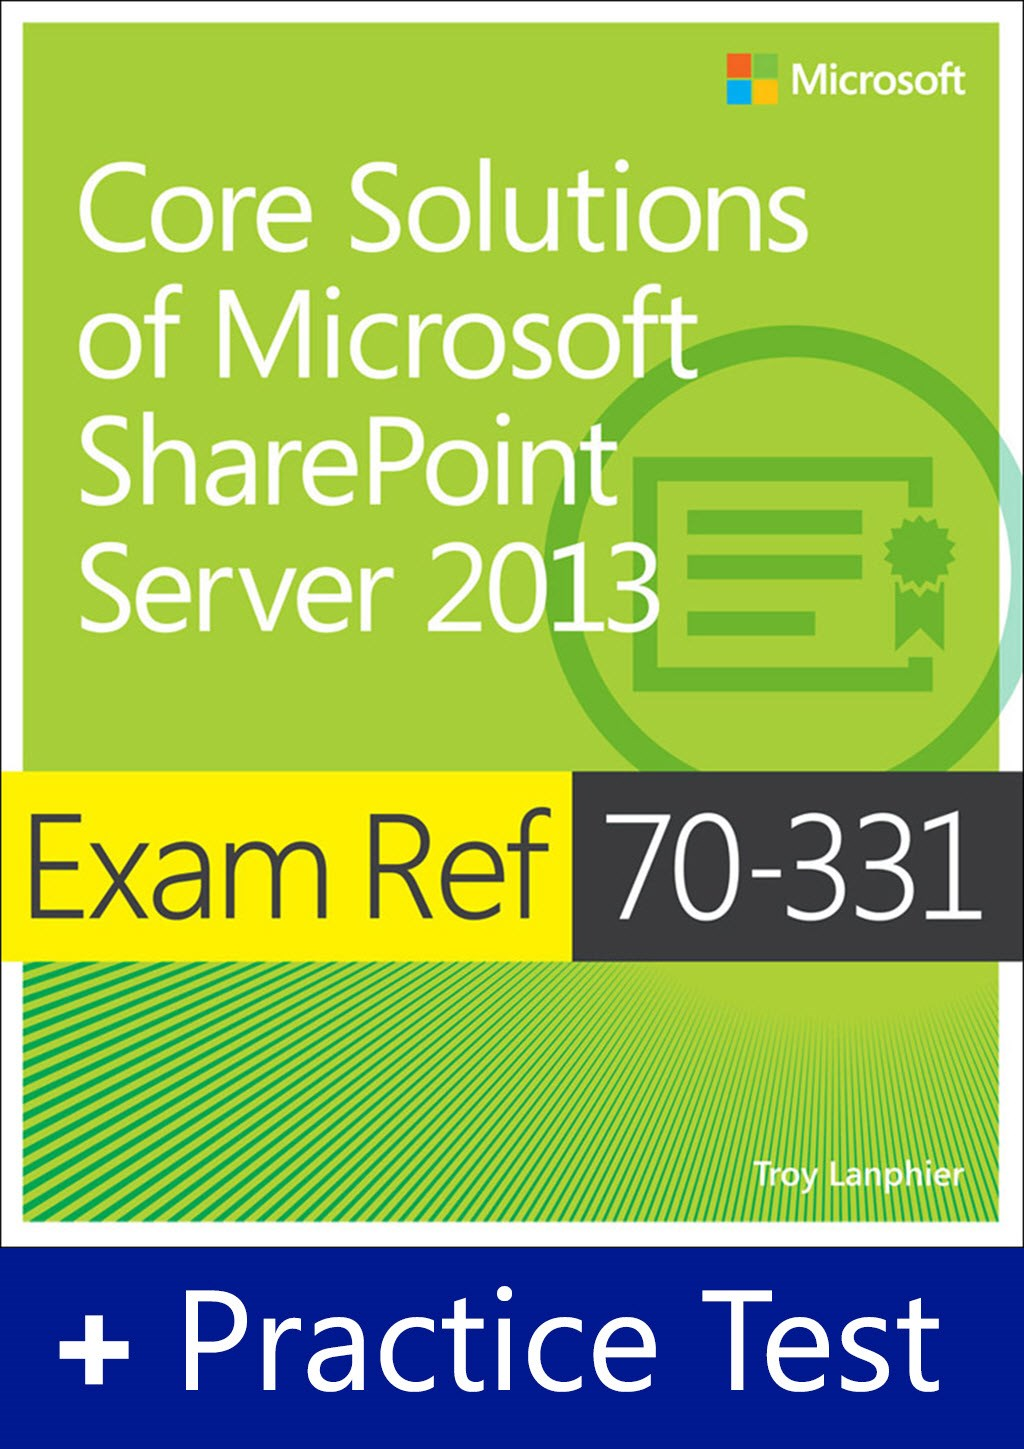 Exam Ref 70-331 Core Solutions of Microsoft SharePoint Server 2013 with Practice Test